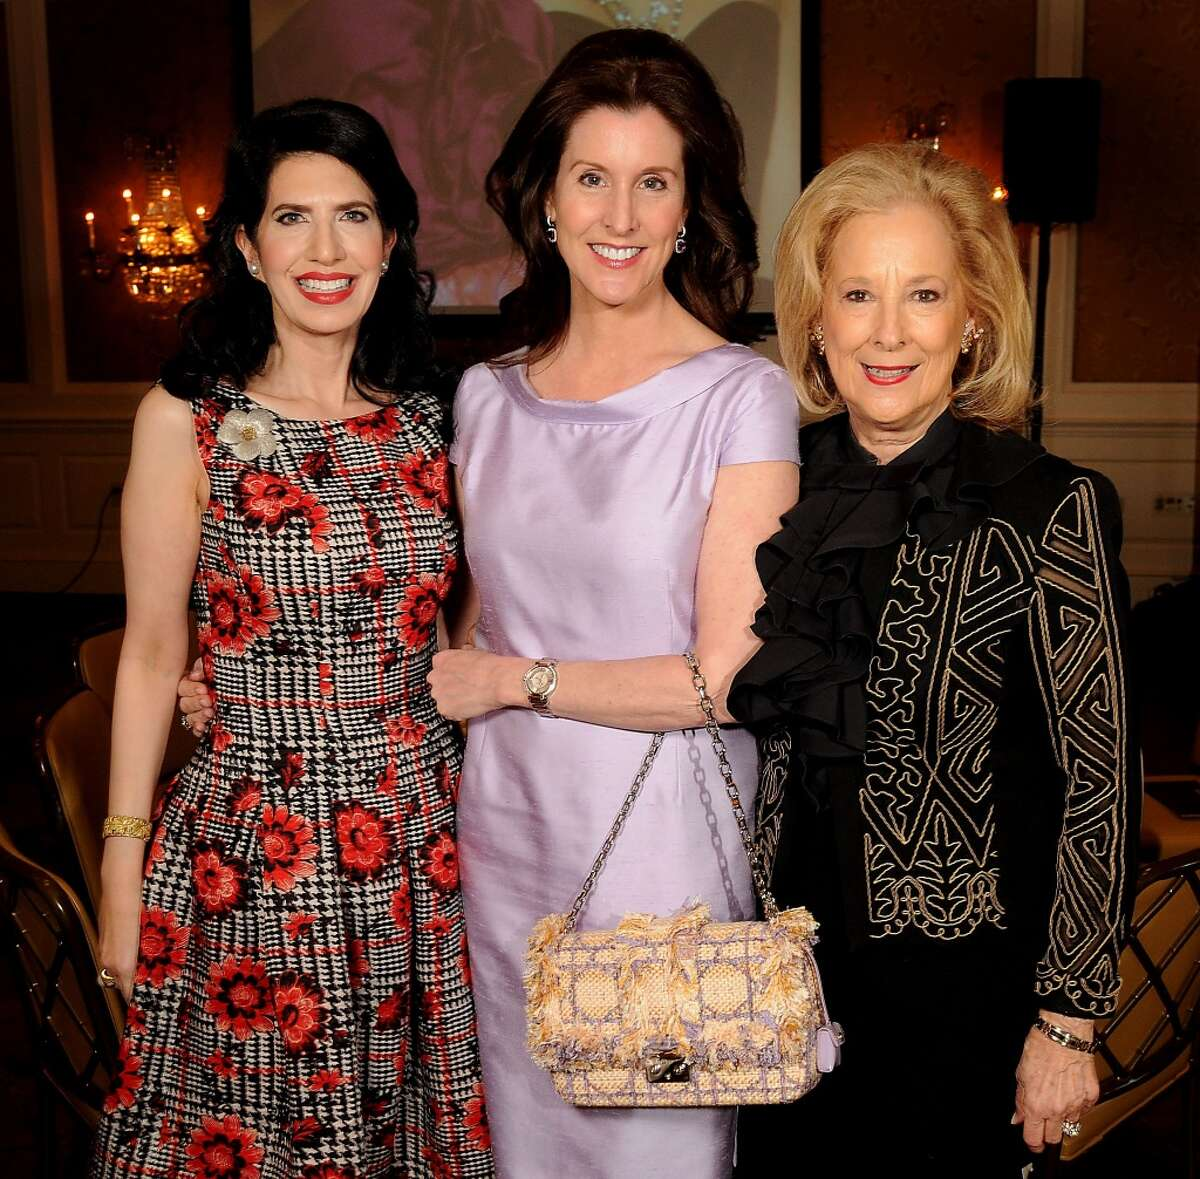 From left: co-chair Kelli Cohen Fein, honoree Phoebe Tudor and co-chair Mary Ann McKeithan